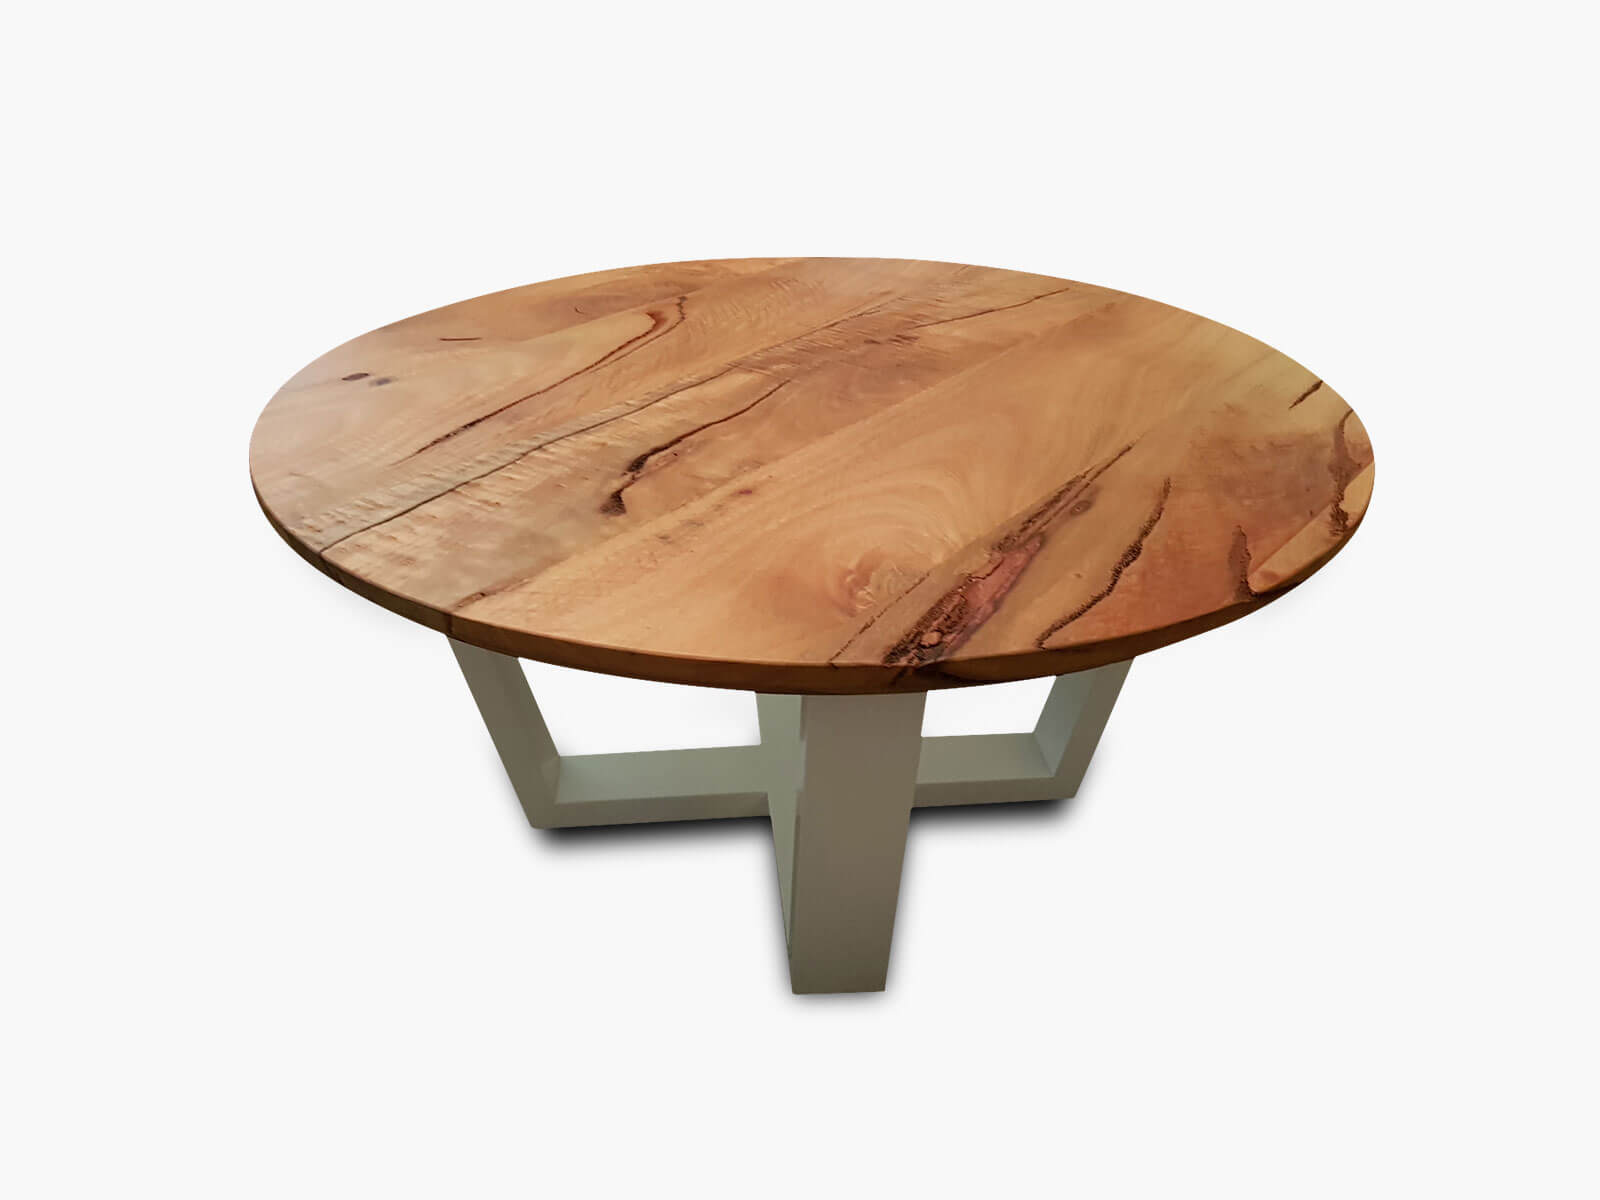 Mundaring Marri Coffee Table